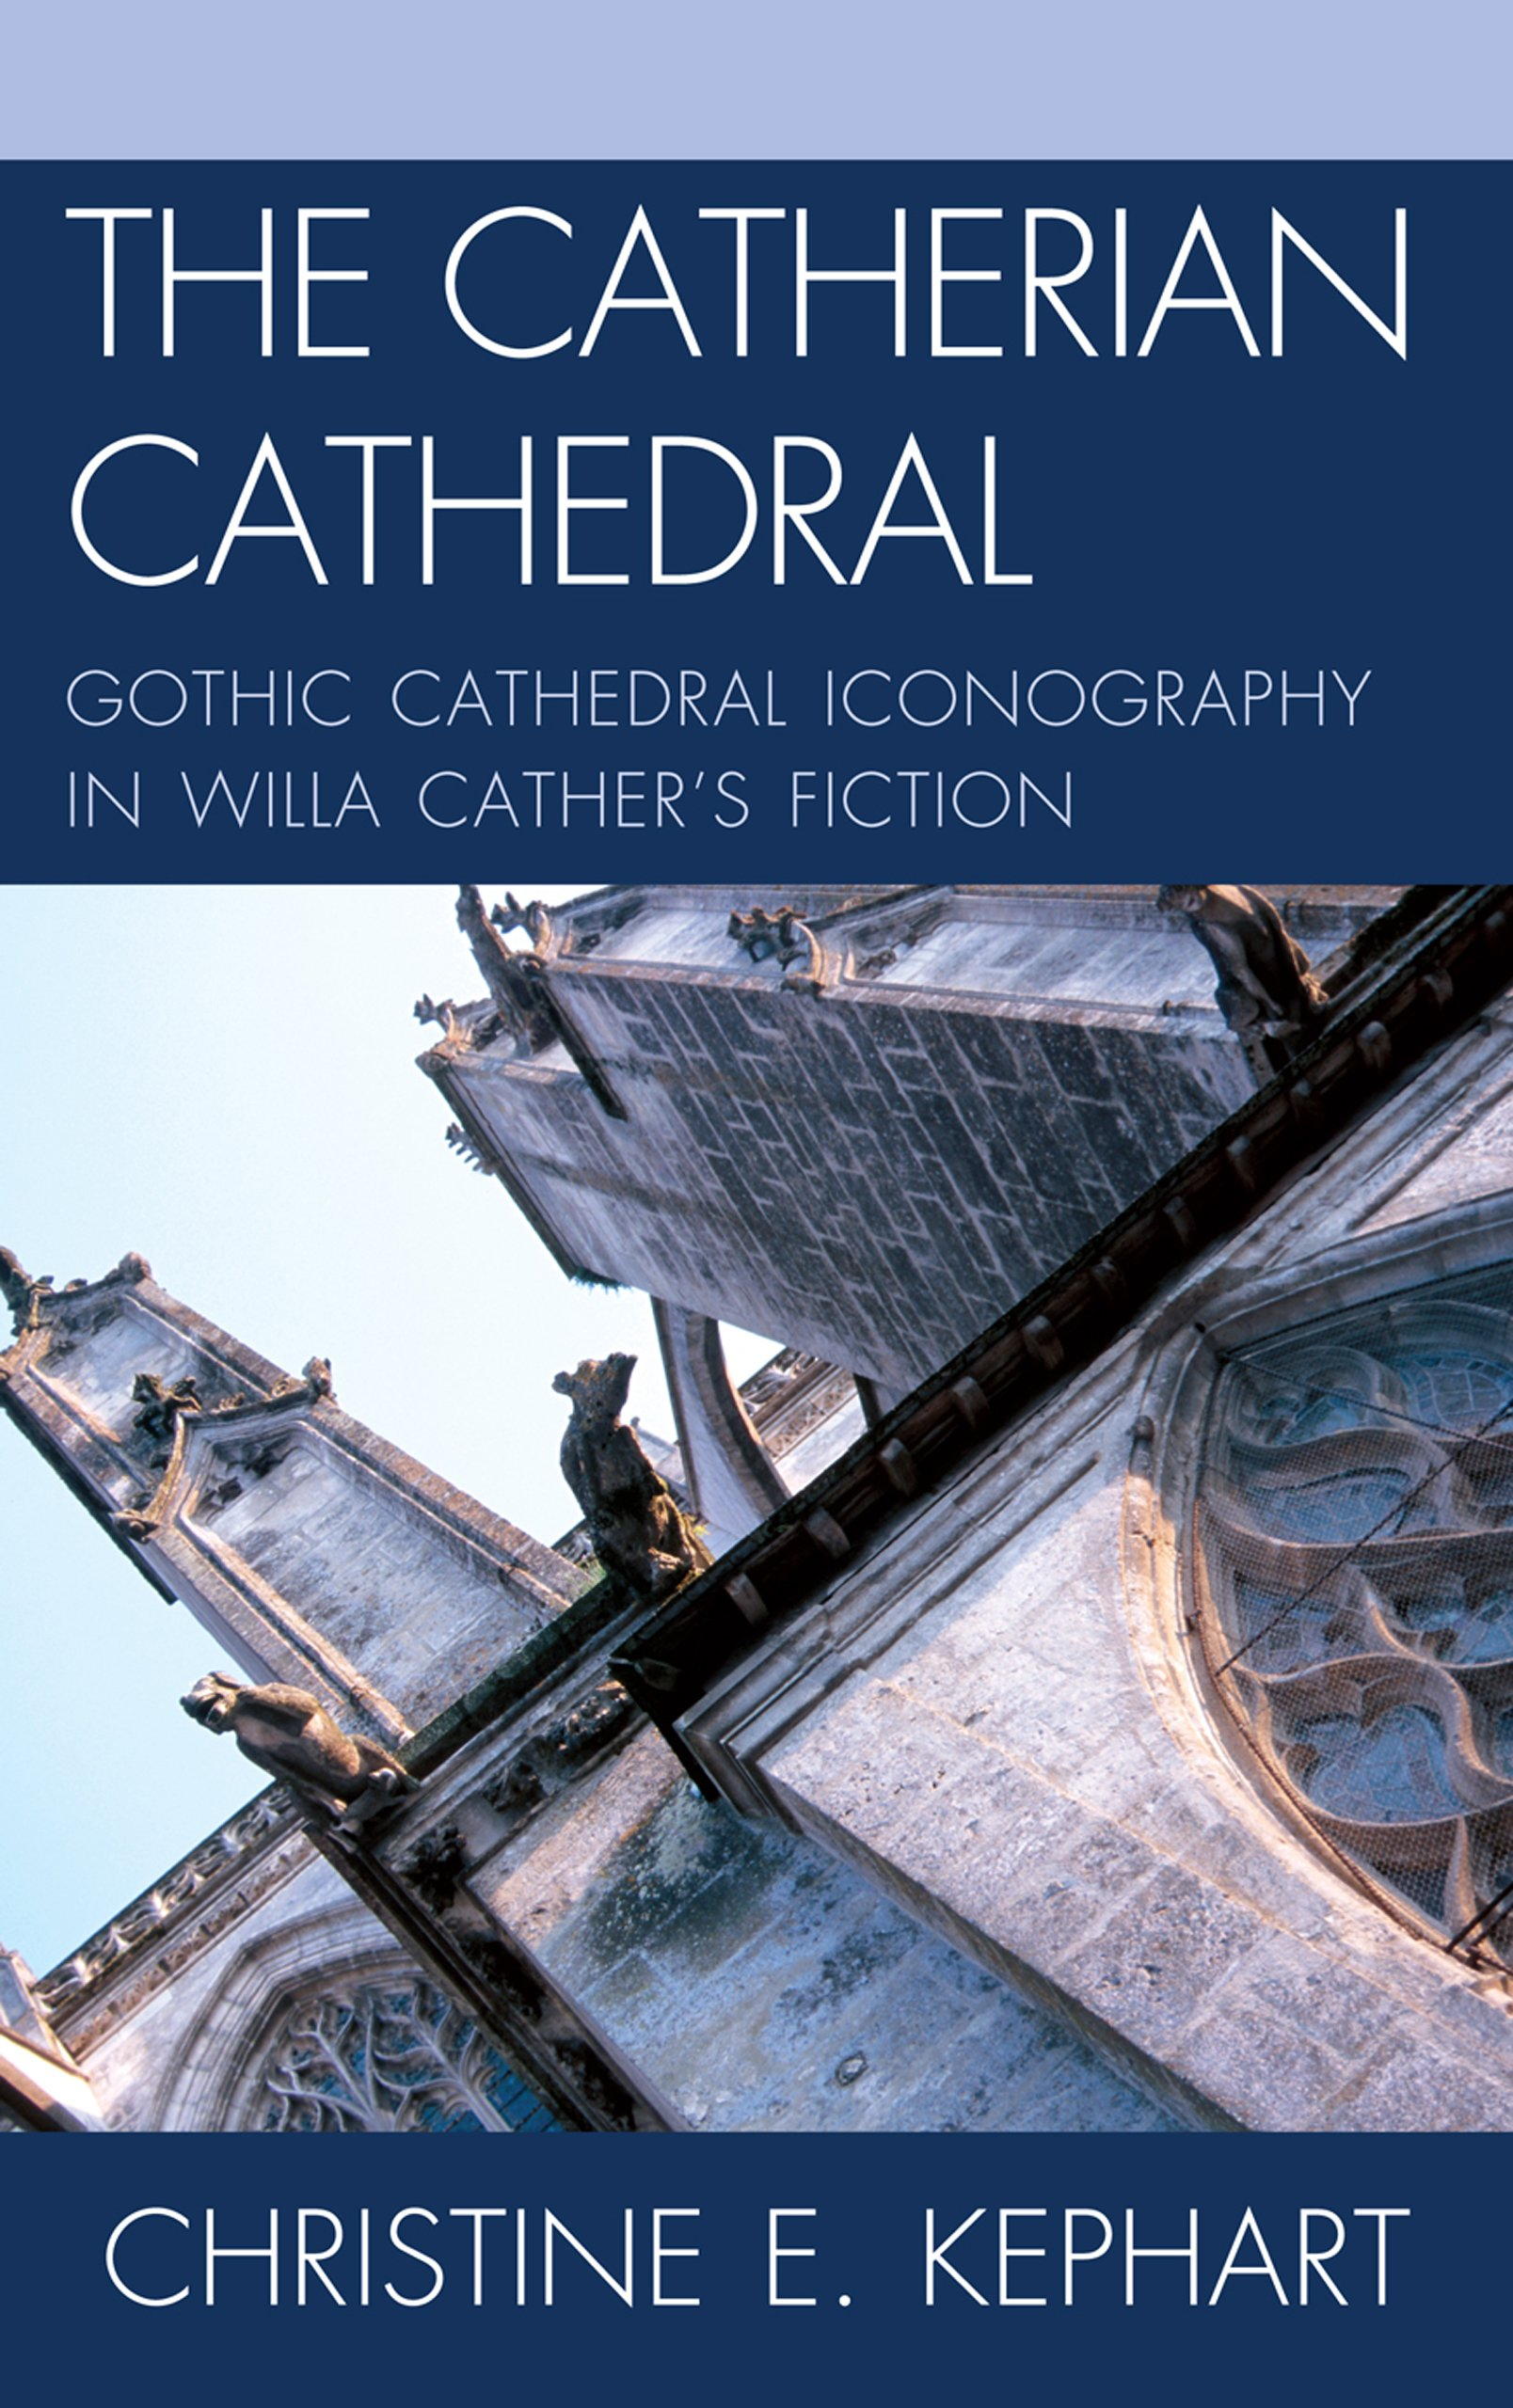 The Catherian Cathedral: Gothic Cathedral Iconography in Willa Cather's Fiction (The Fairleigh Dickinson University Press Series on Willa Cather) ebook